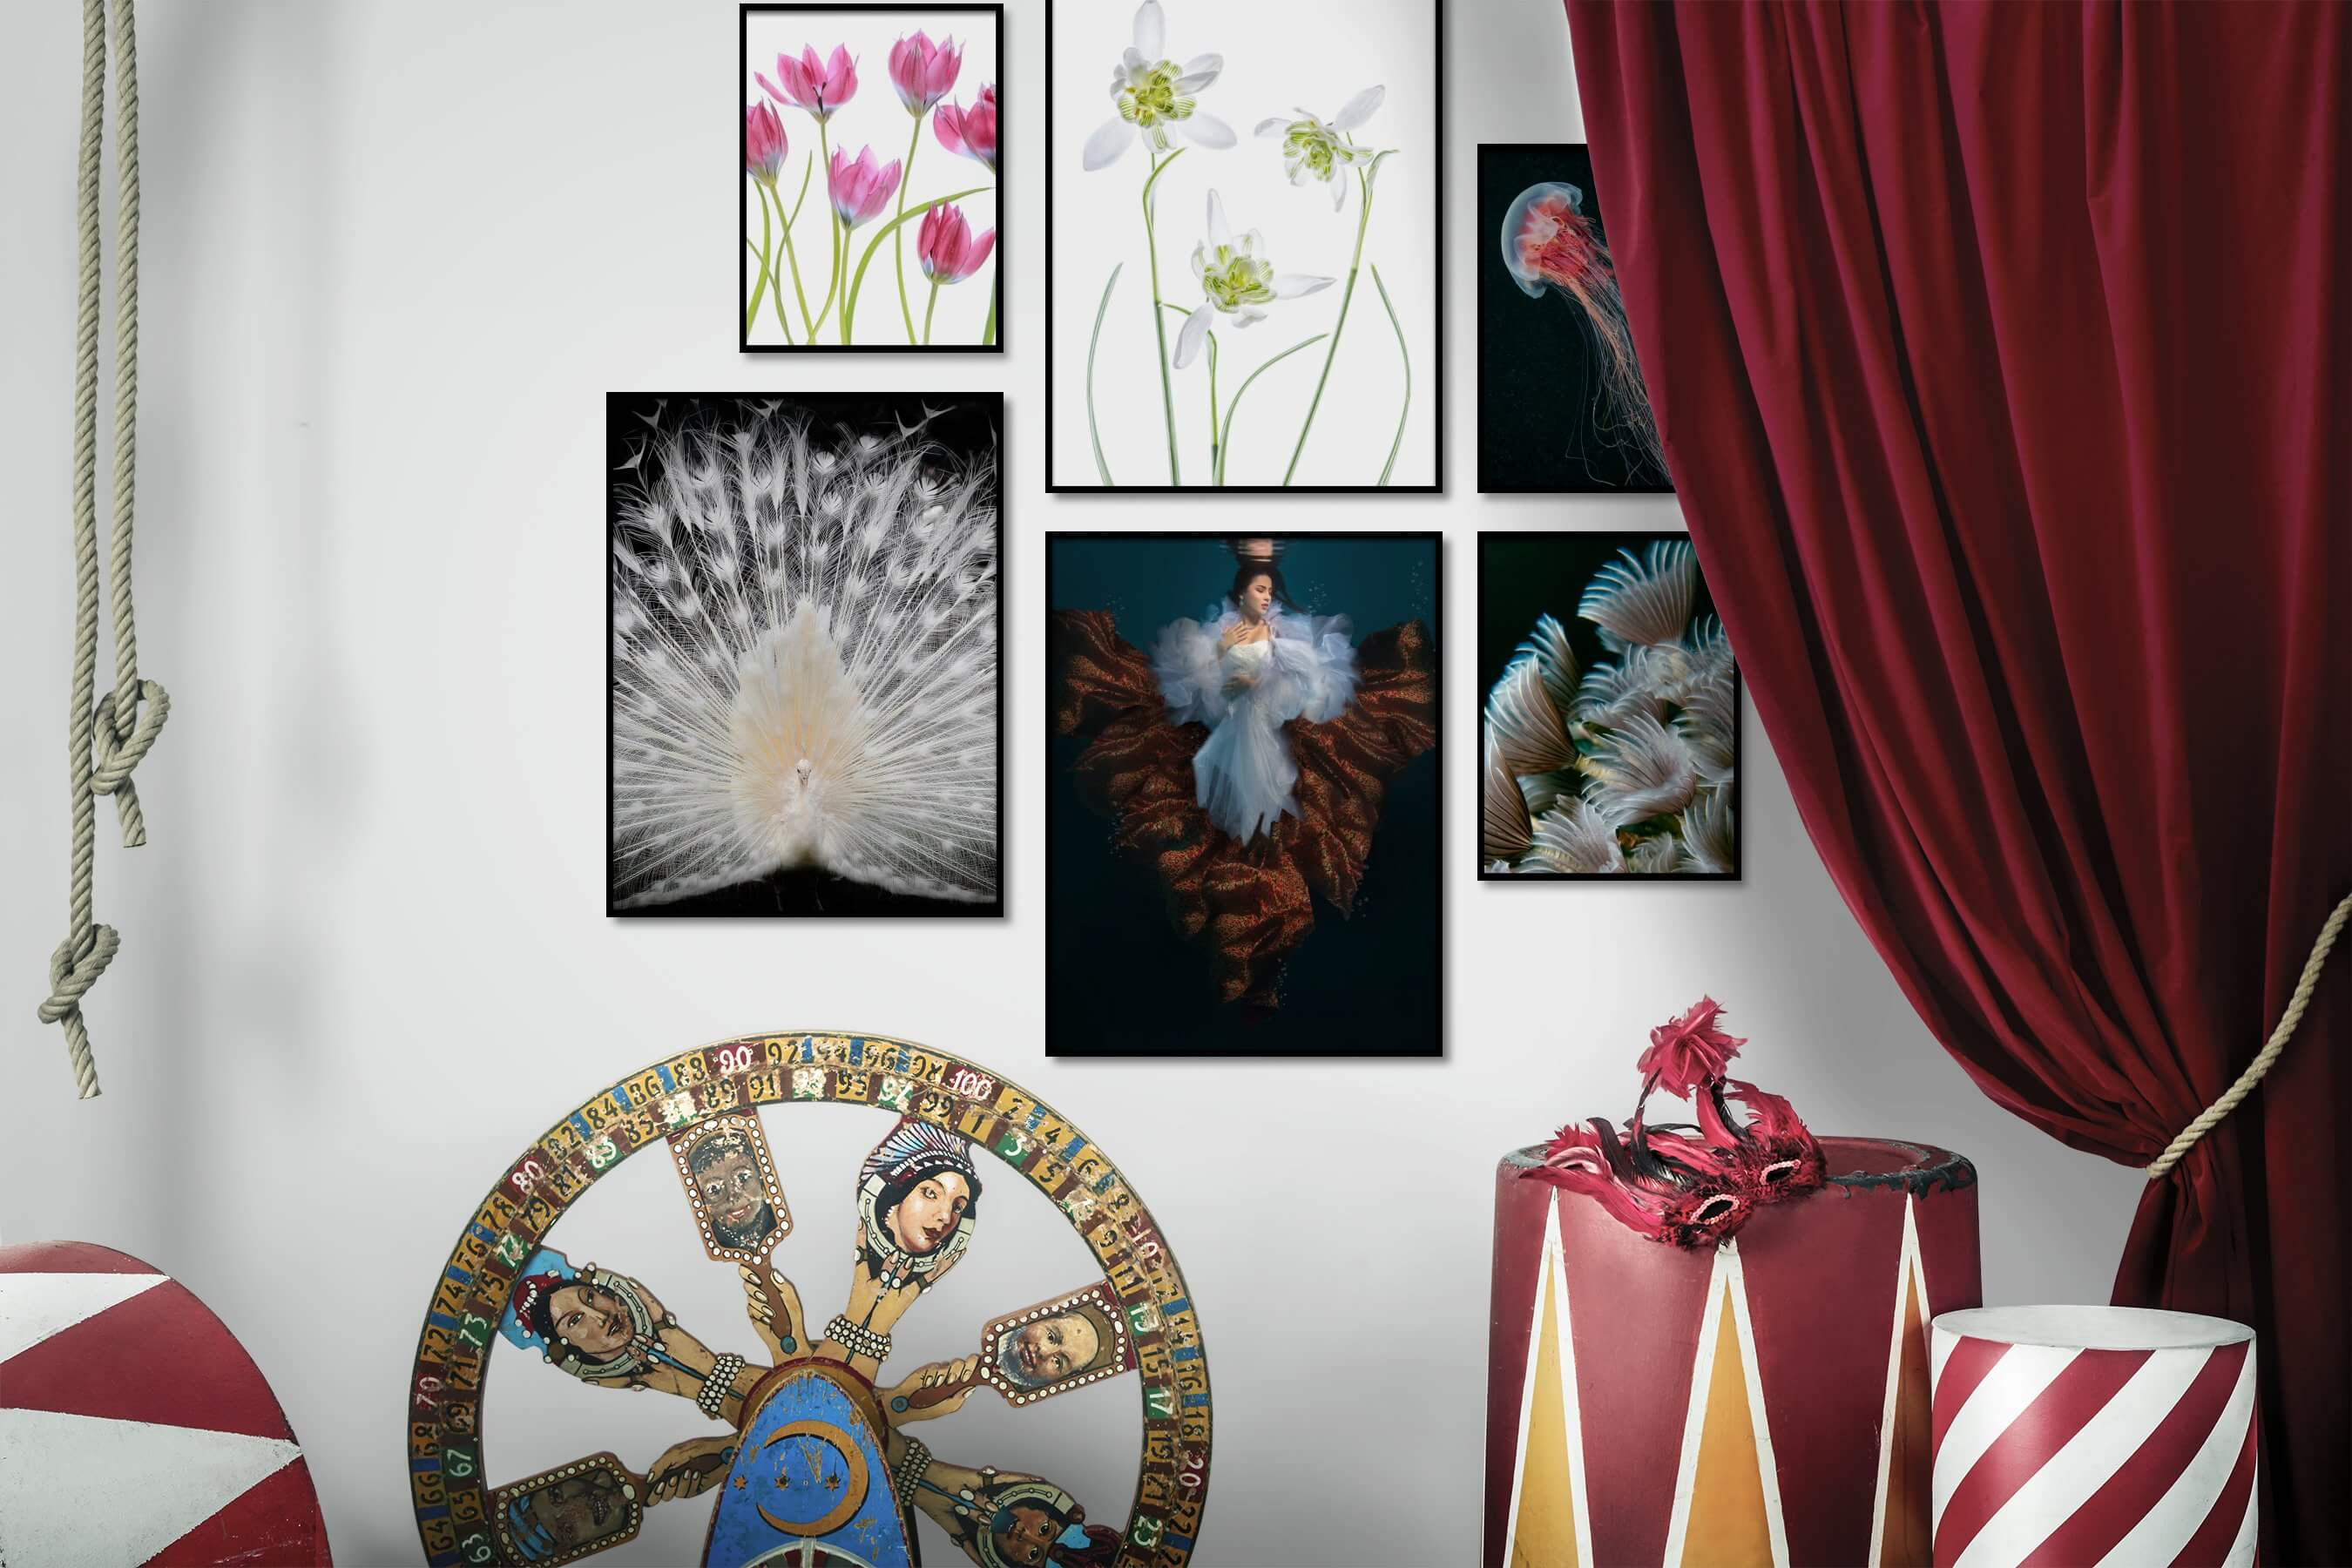 Gallery wall idea with six framed pictures arranged on a wall depicting Bright Tones, For the Moderate, Flowers & Plants, Animals, Fashion & Beauty, Beach & Water, Dark Tones, and For the Minimalist